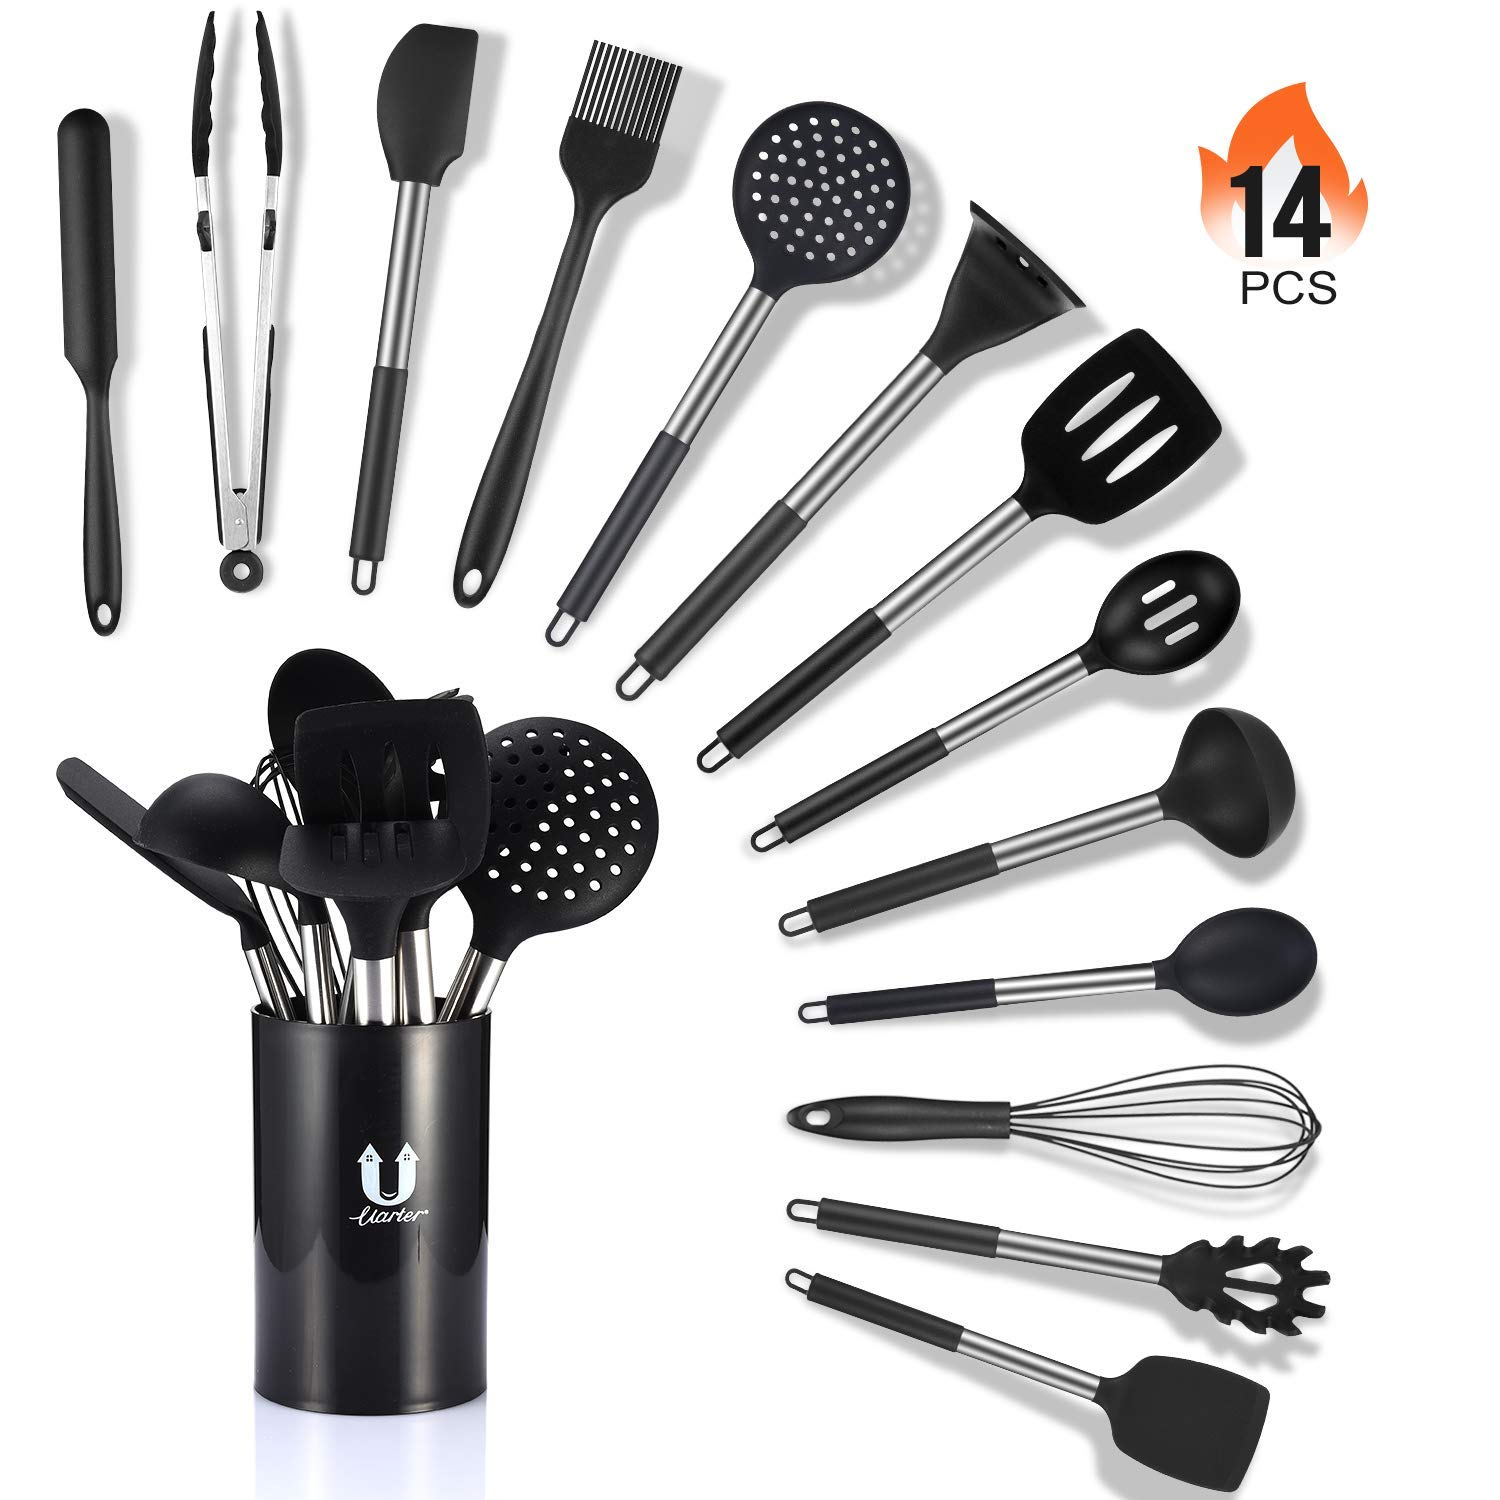 Silicone Cooking Utensil Set 14 Pcs, Uarter Kitchen Utensils Cooking Utensils Set, Non-stick Heat Resistant Silicone Cookware with Stainless Steel Handle - Black by Uarter